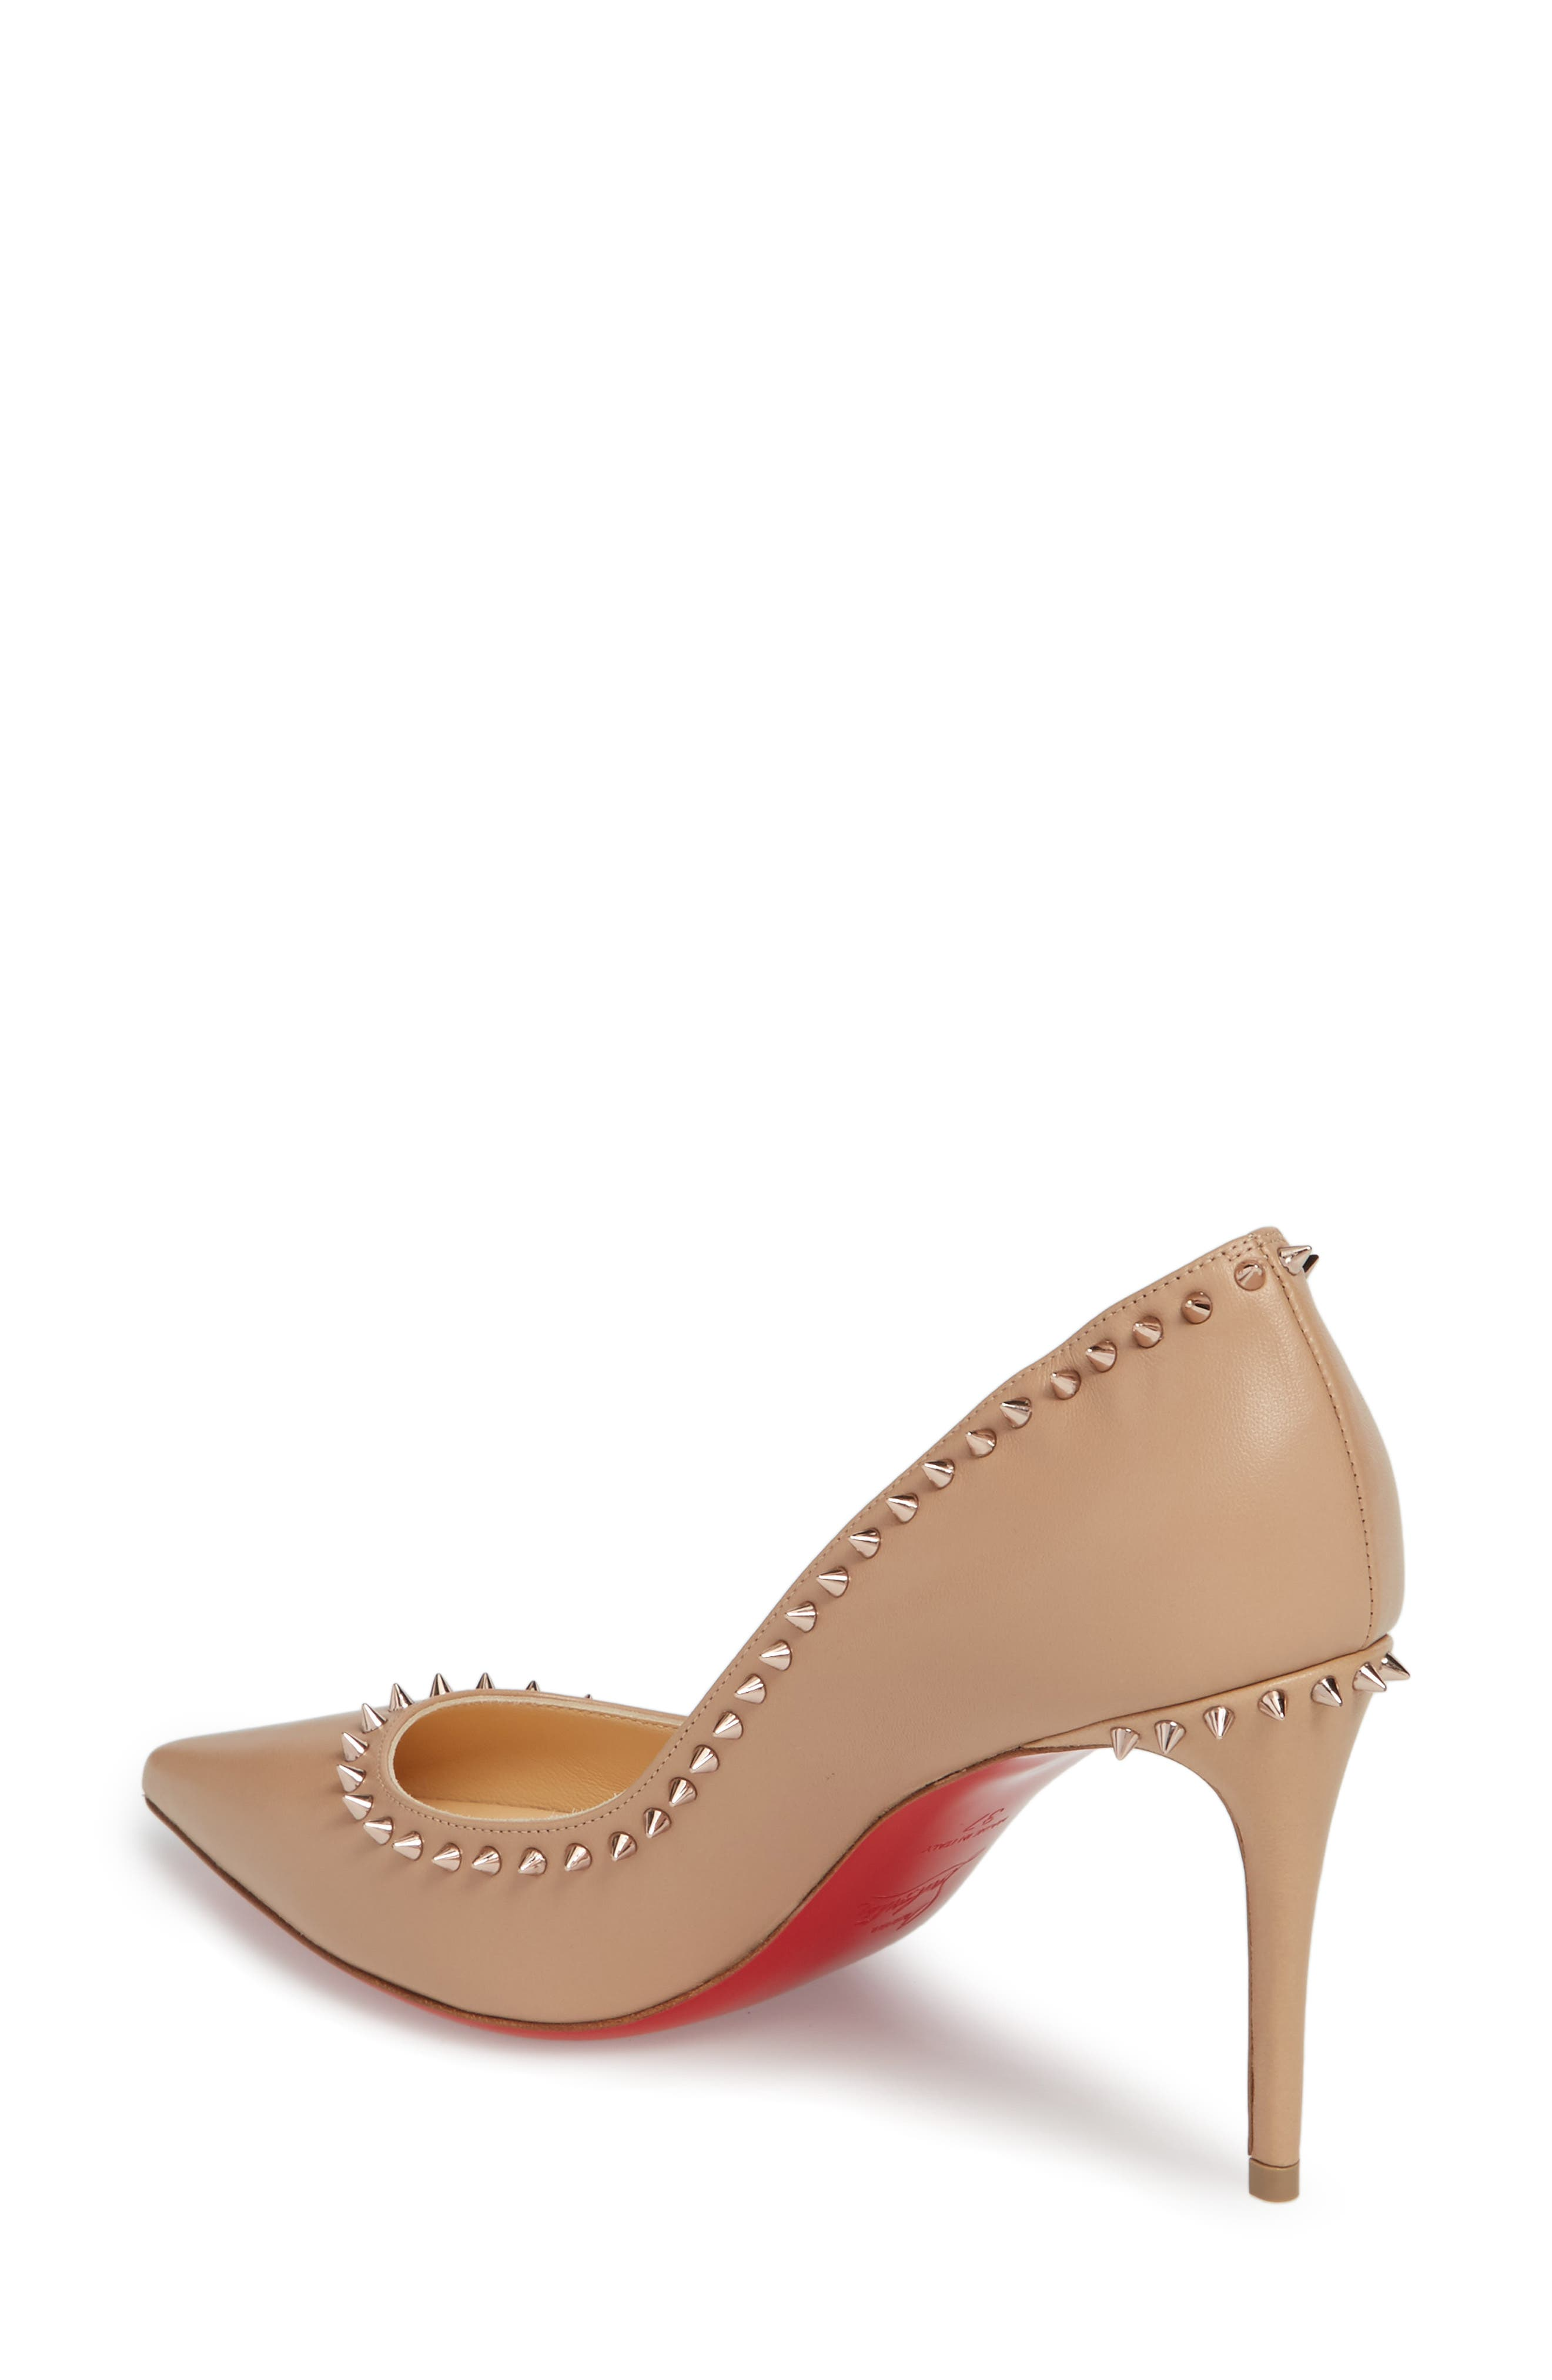 Anjalina Spiked Pointy Toe Pump,                             Alternate thumbnail 4, color,